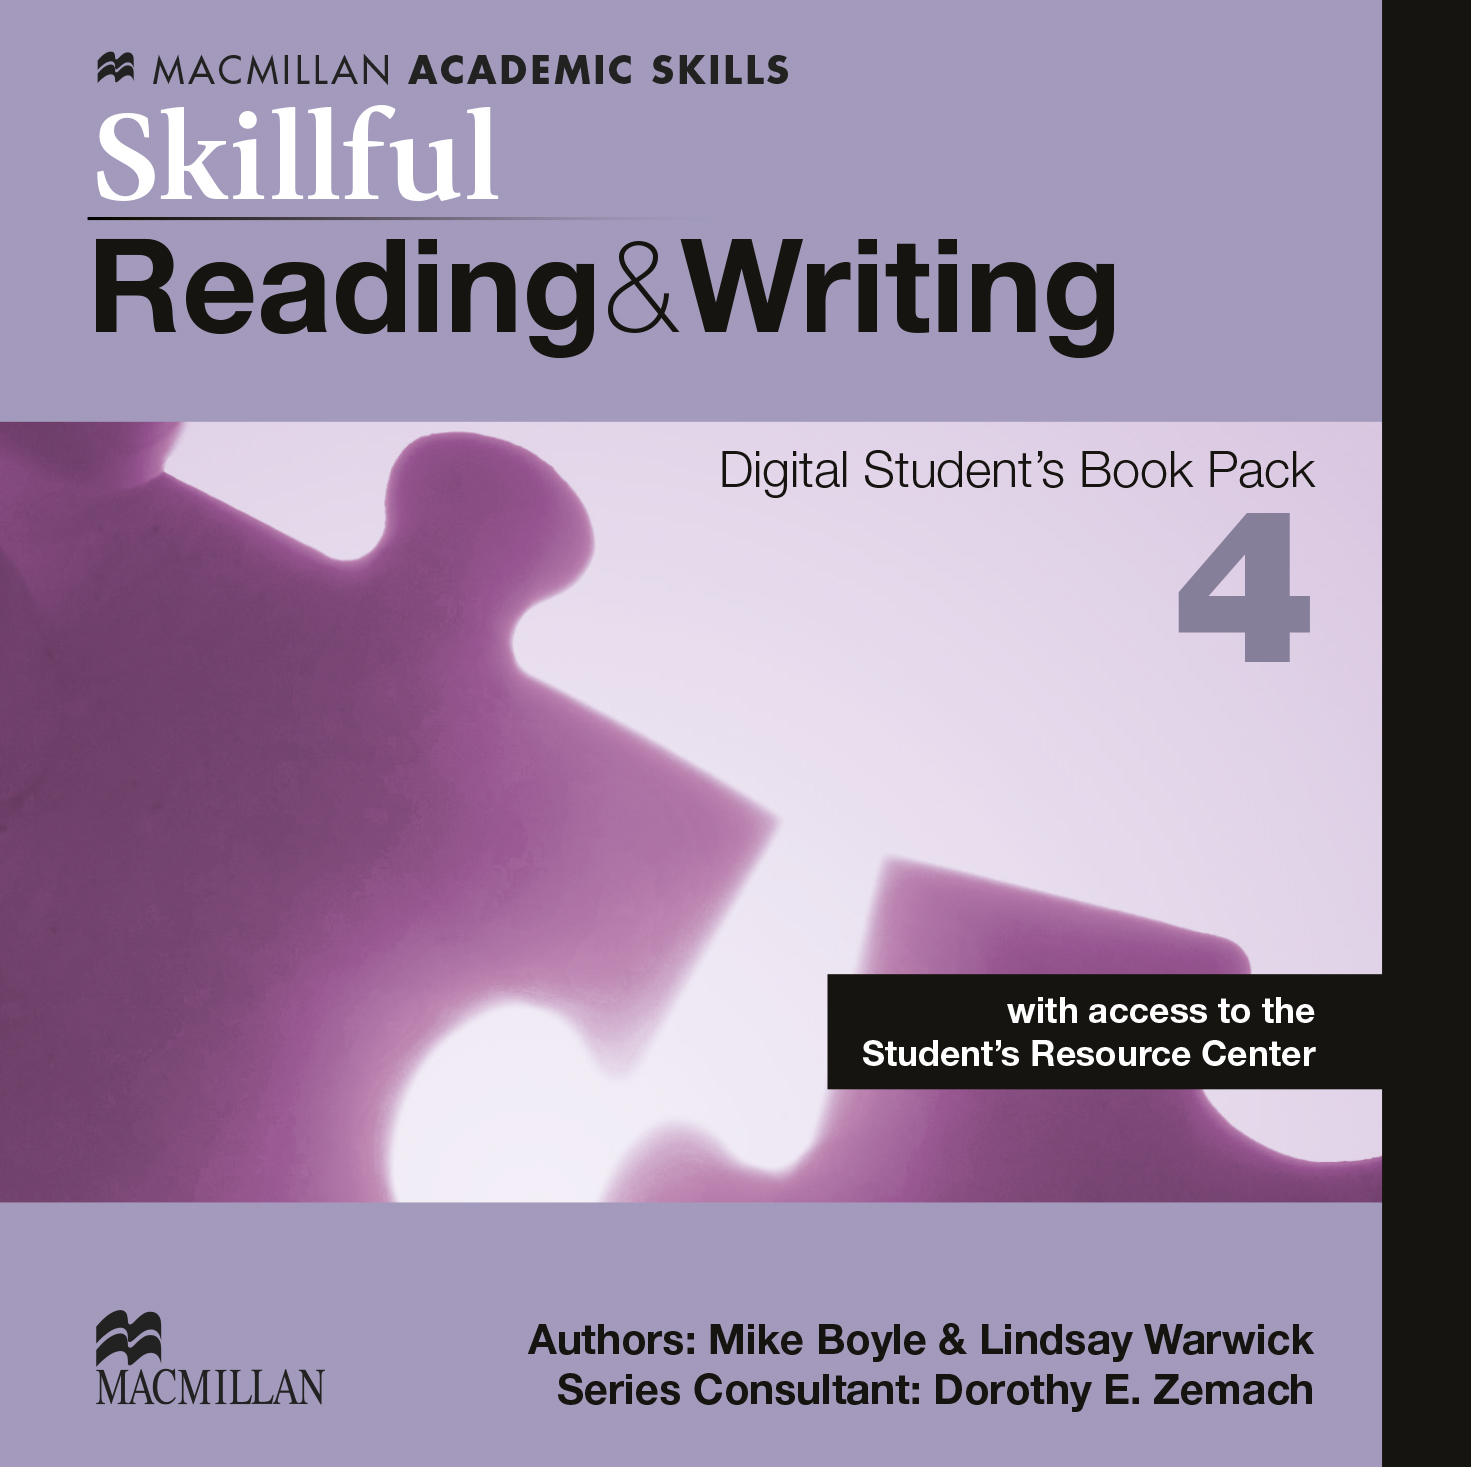 Skillful Level 4 Reading & Writing Digital Student